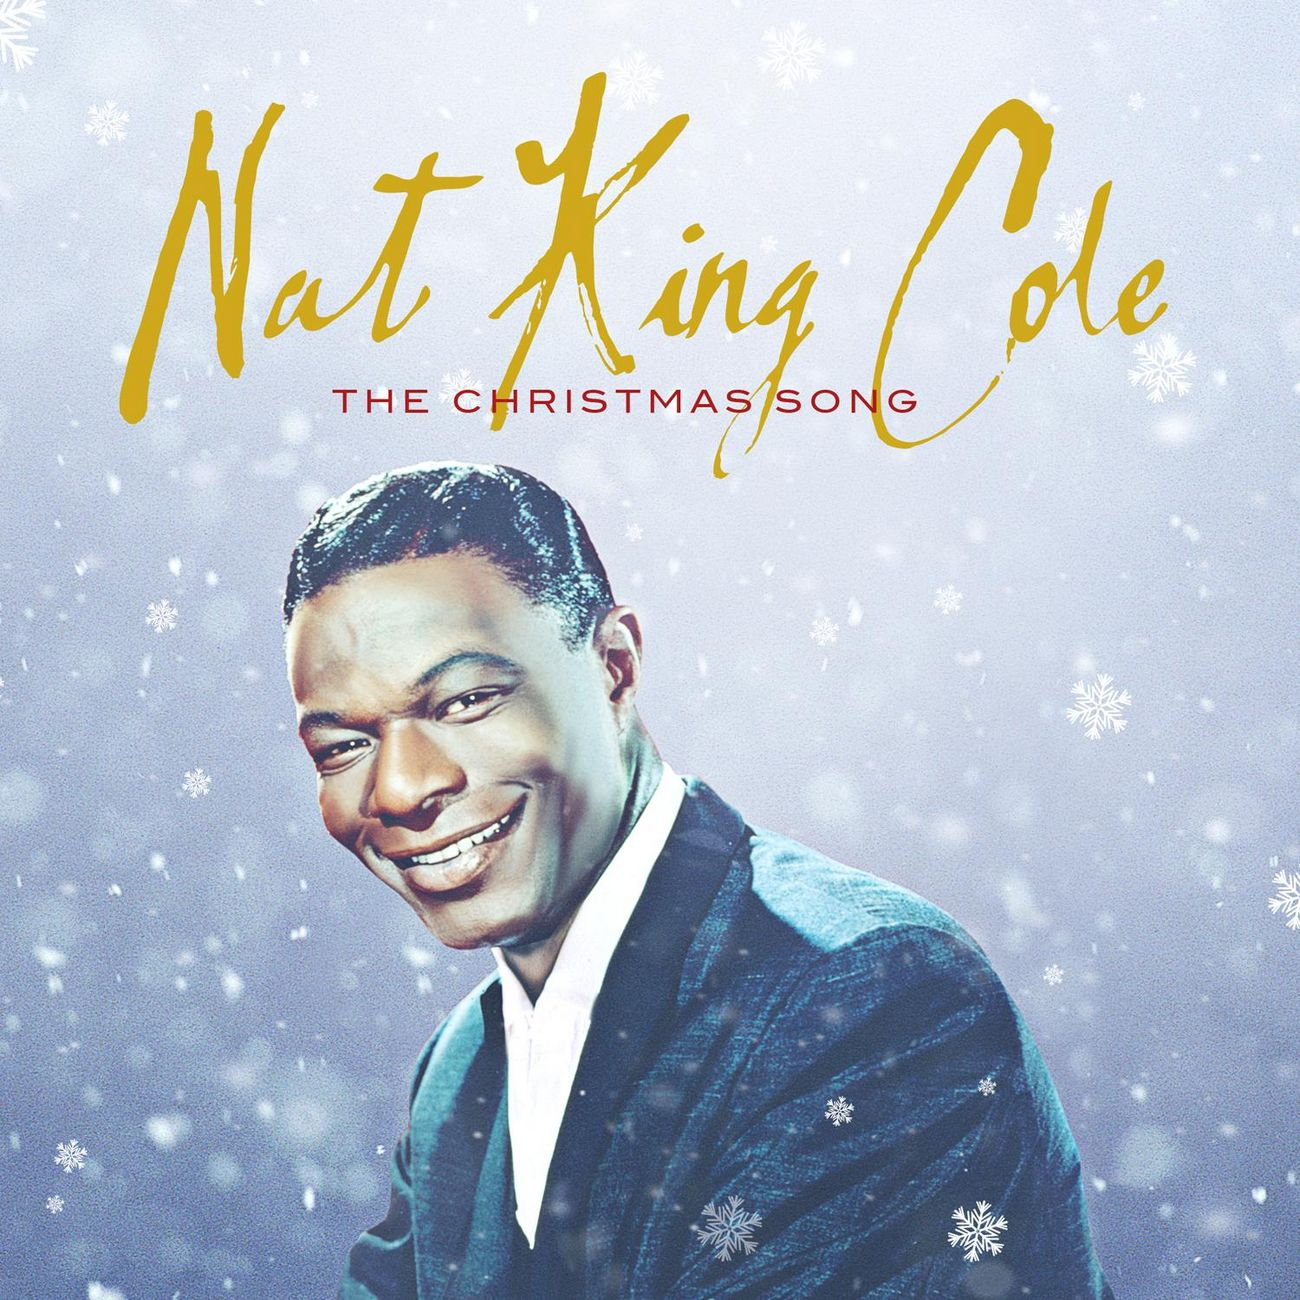 Saturday Night Tunes: The Christmas Song – and that's the way it was